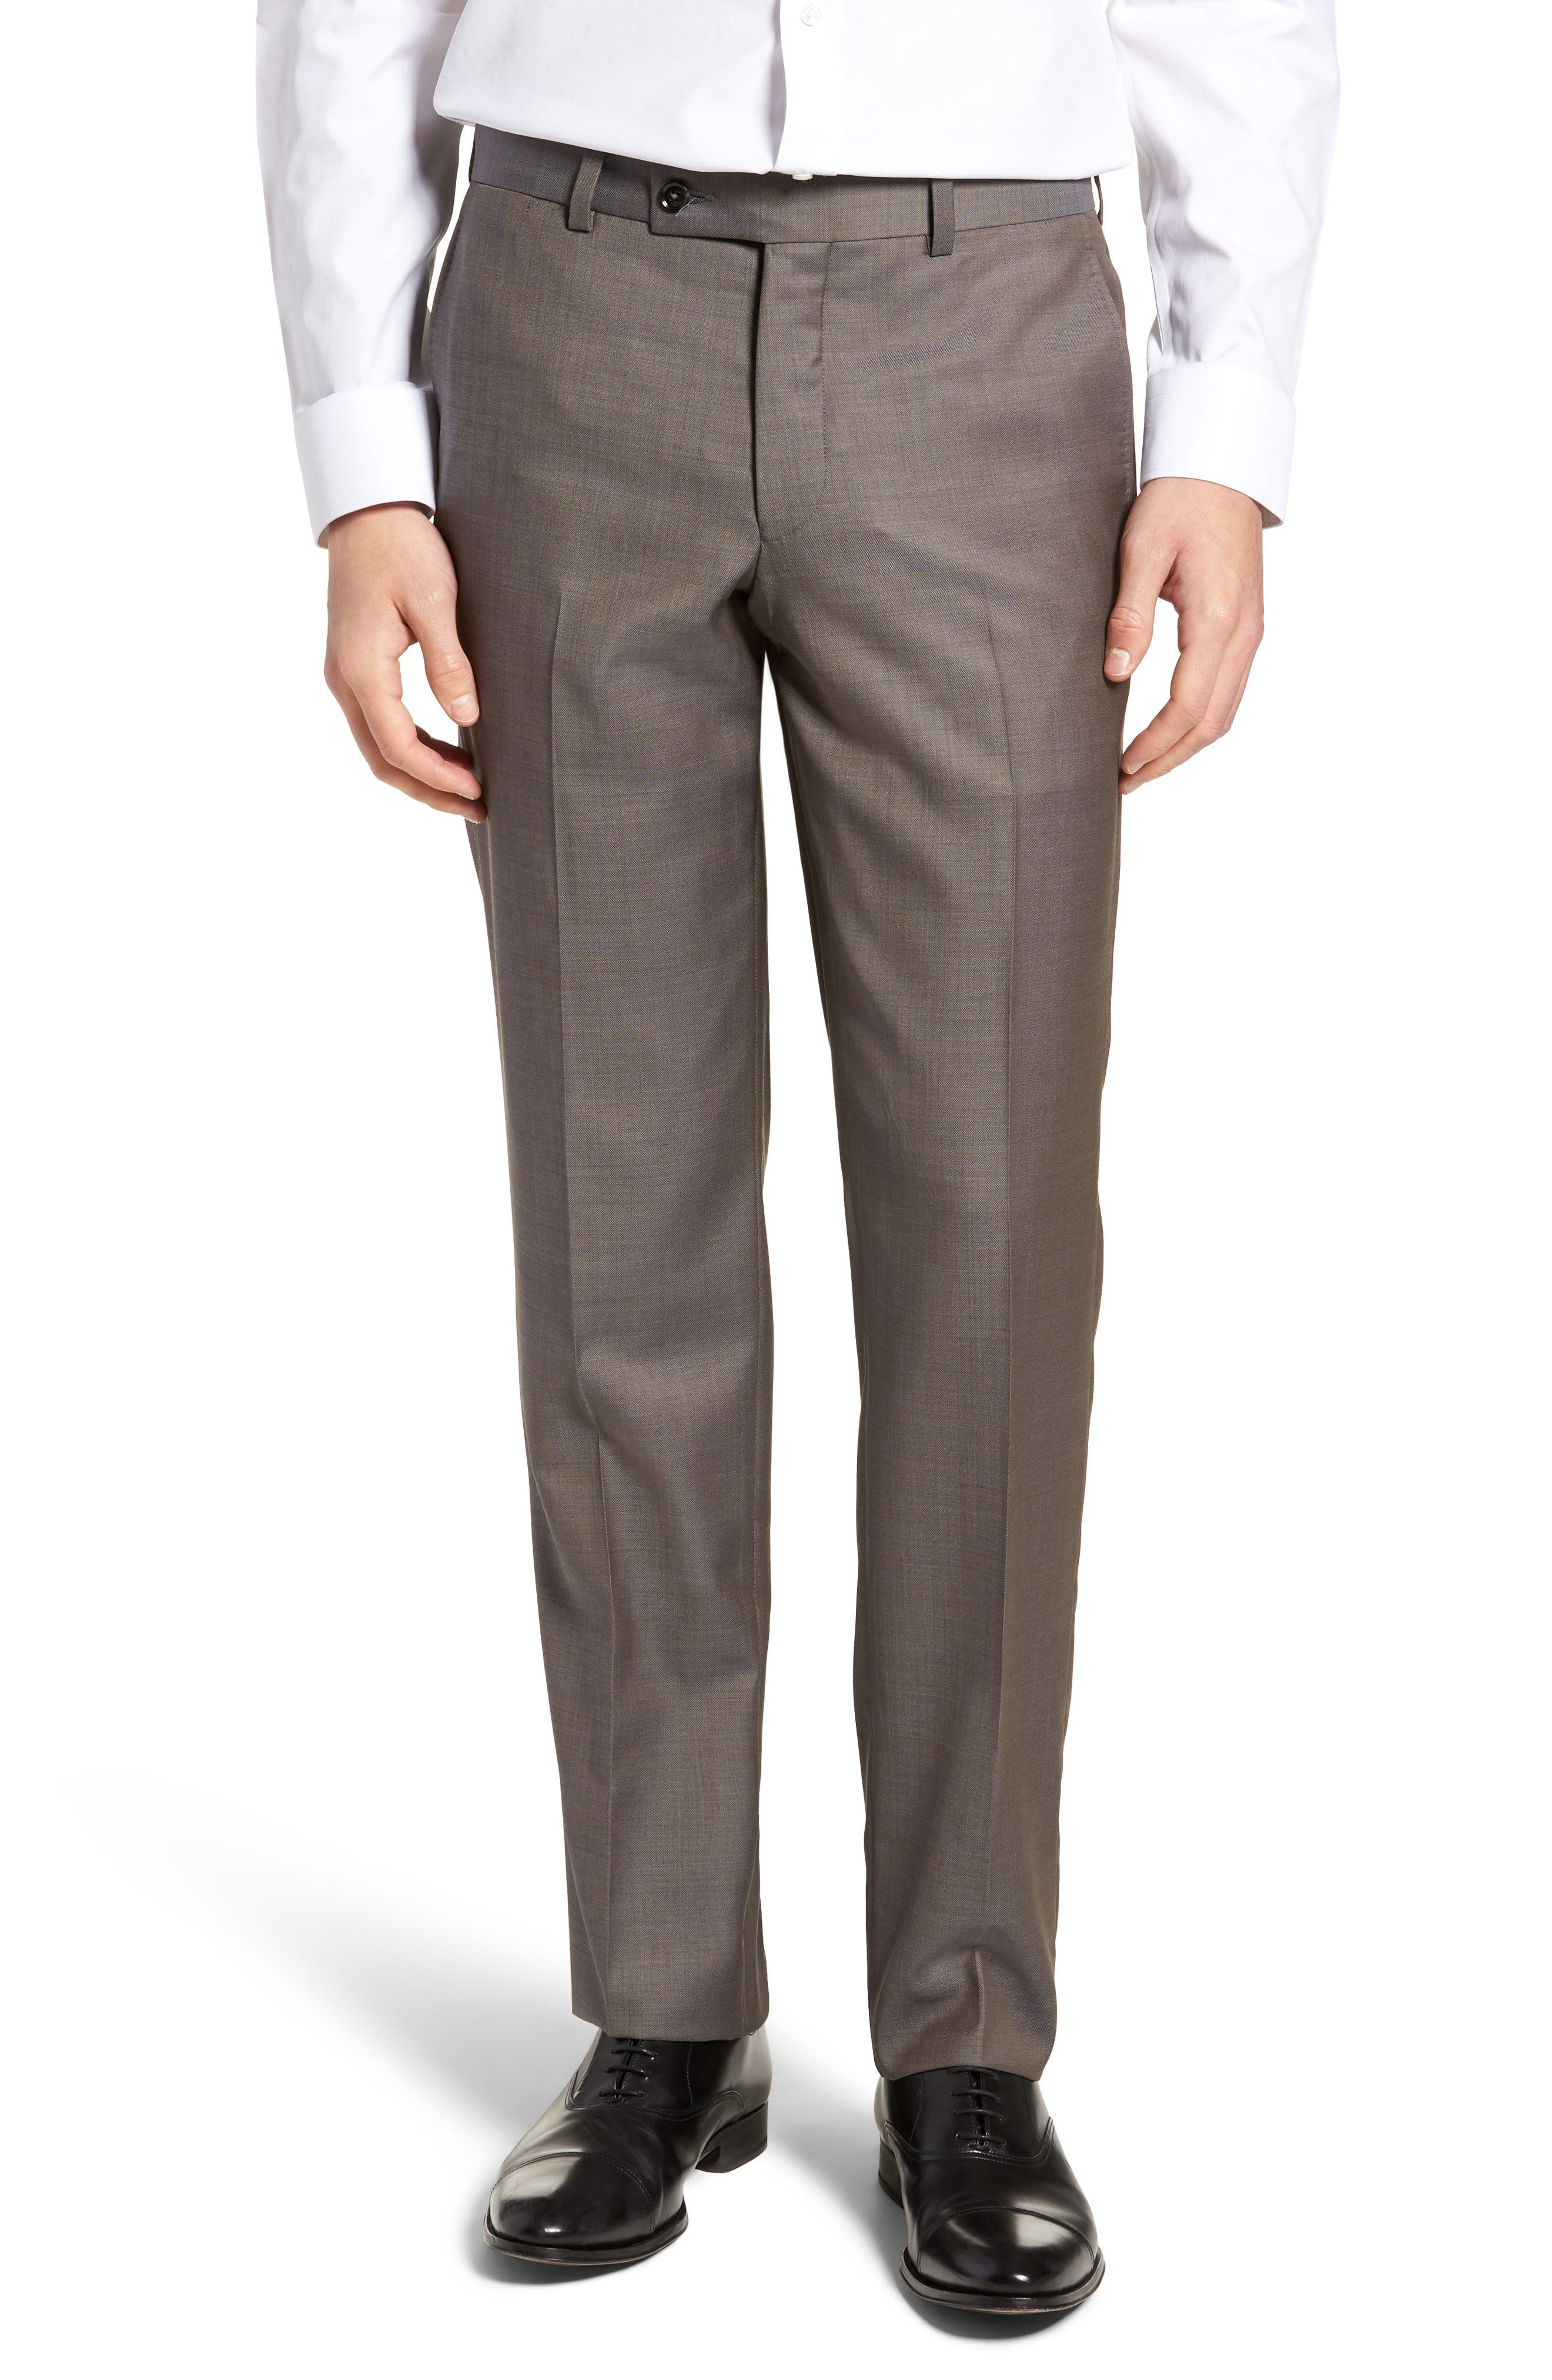 TED BAKER LONDON Jefferson Flat Front Wool Trousers, Main, color, MID GREY